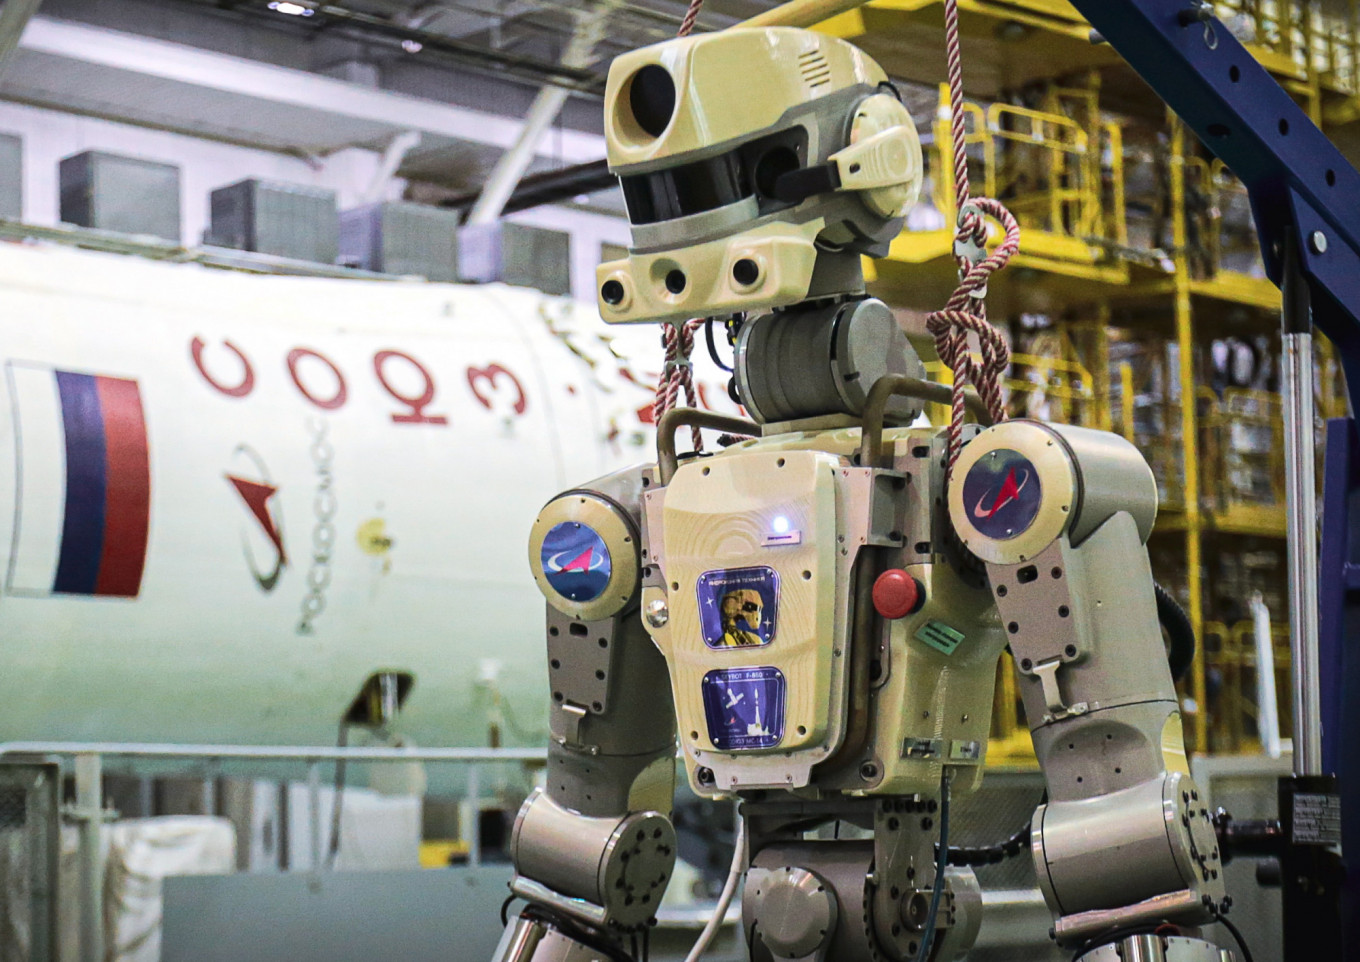 Russian Spacecraft Carrying Humanoid Robot Fails to Dock With Space Station